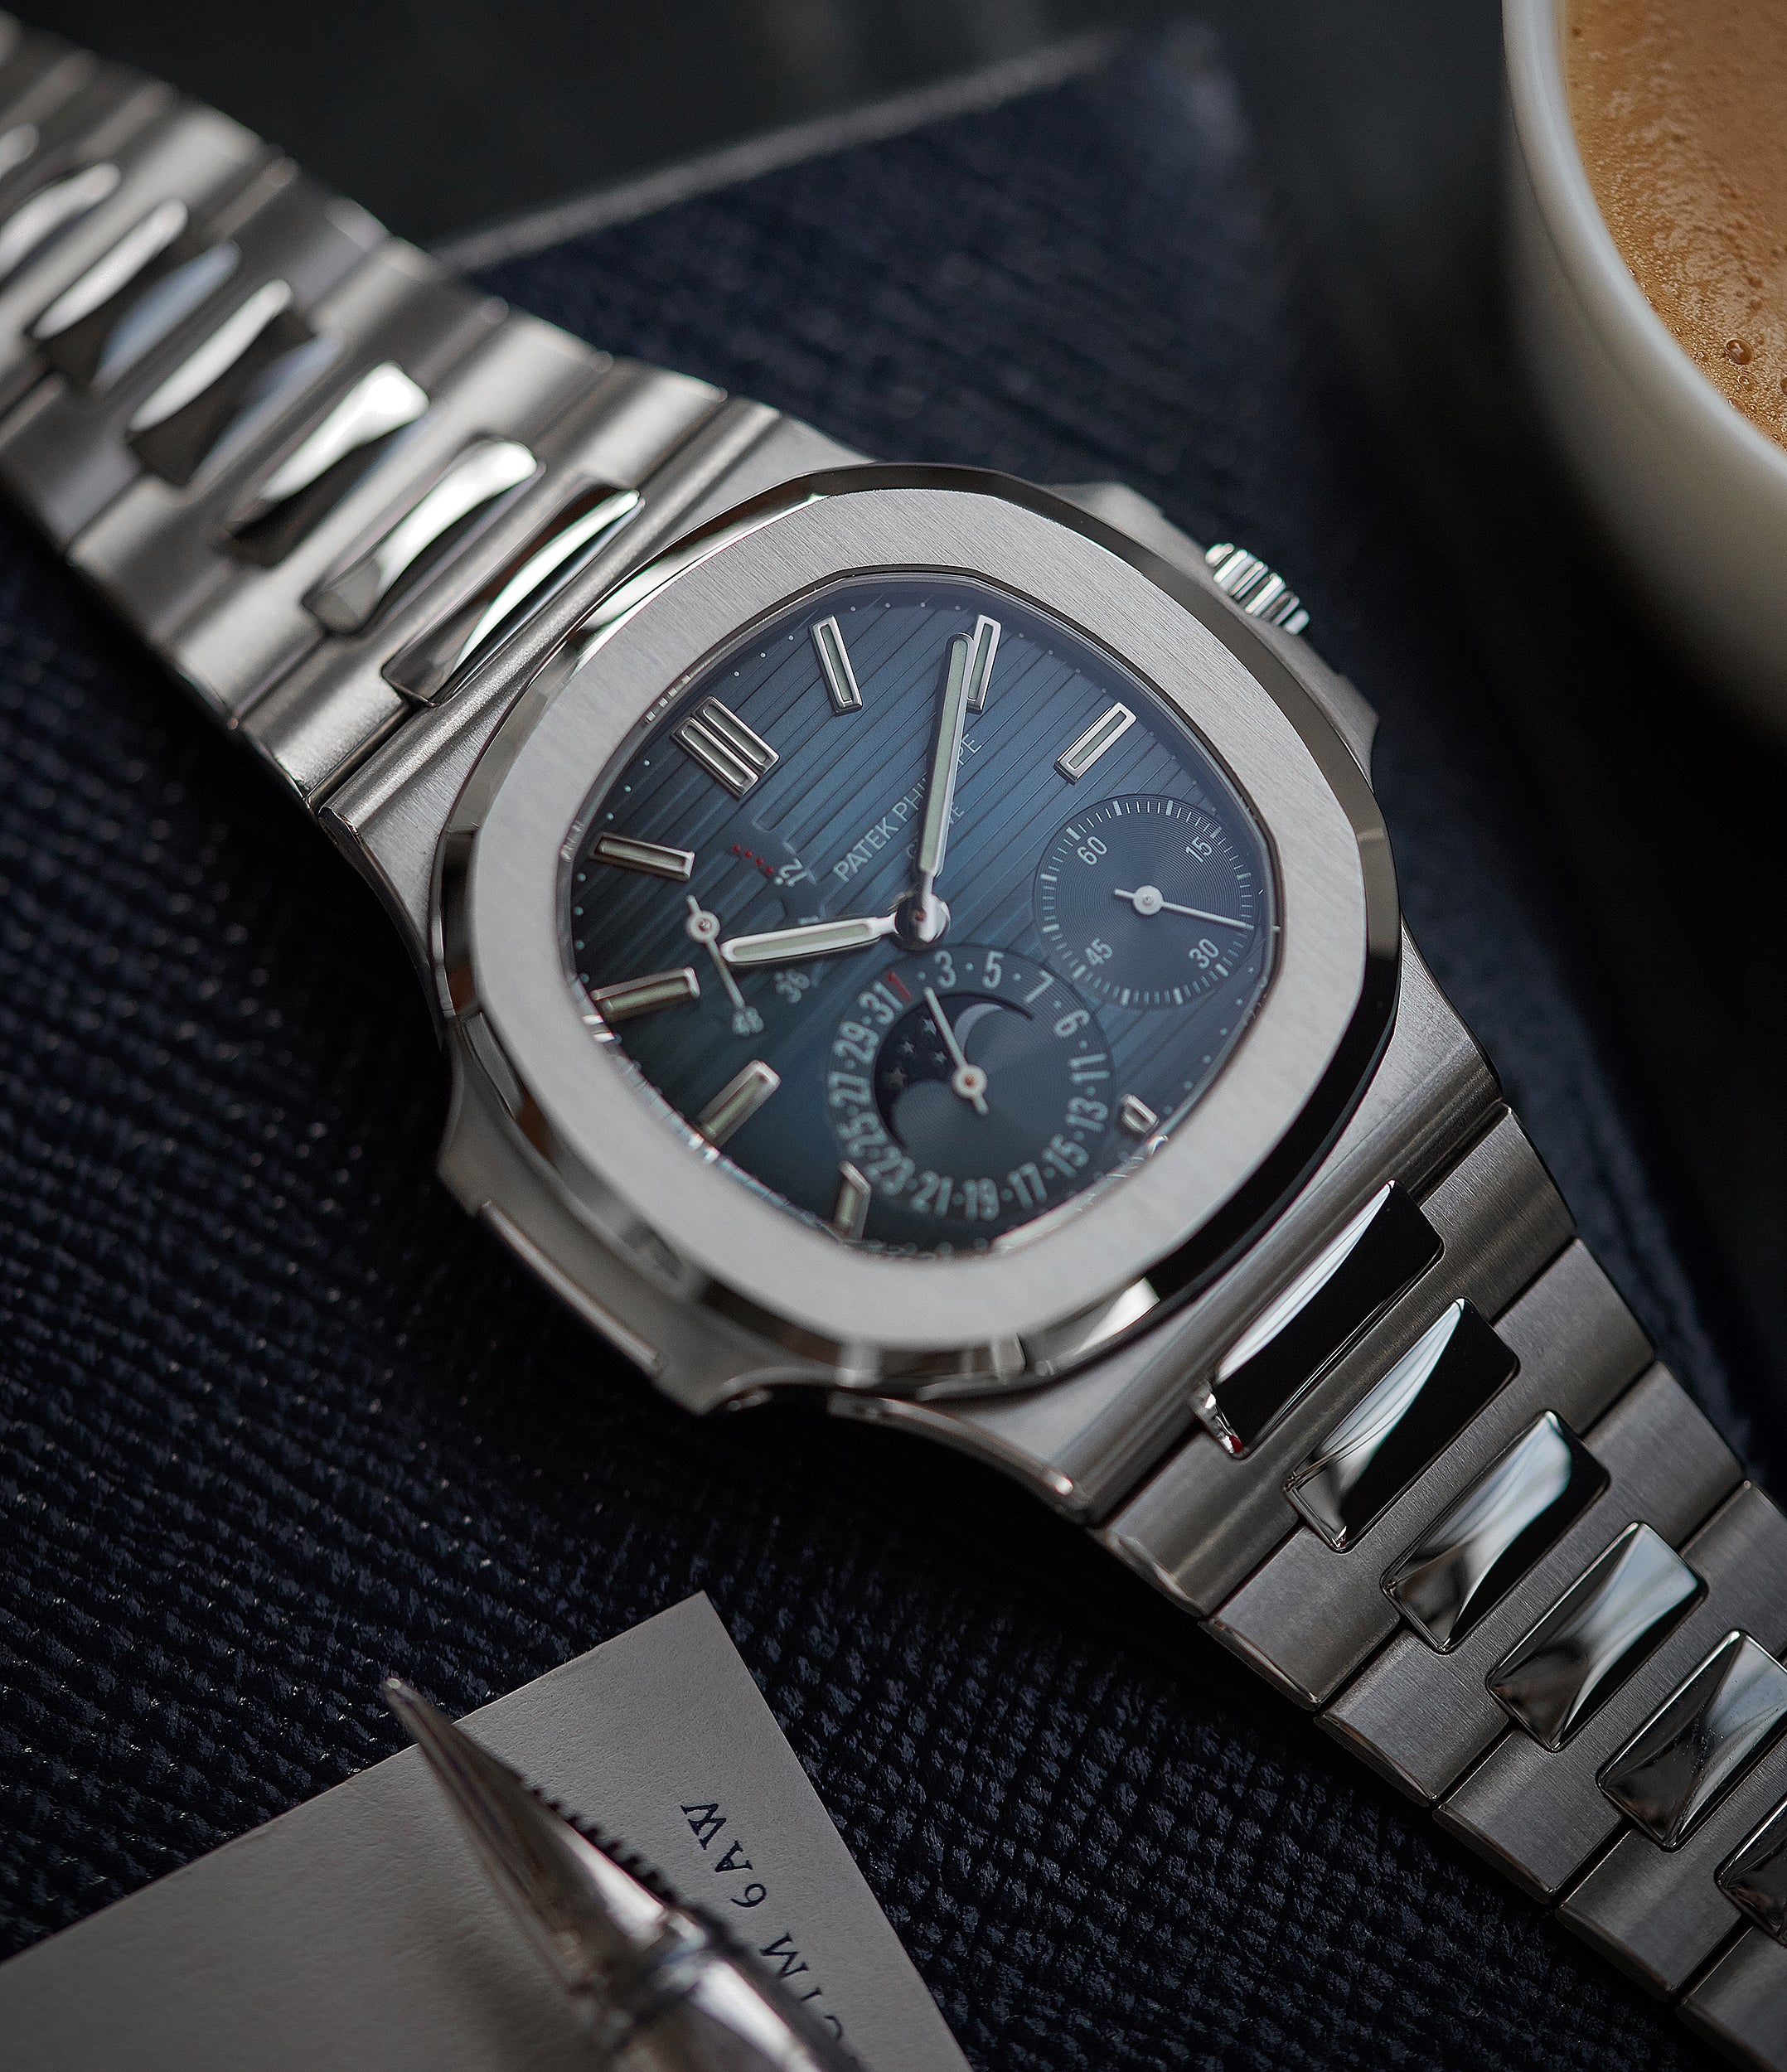 for sale Patek Philippe Nautilus Moon Phase 5712/1A-001 steel pre-owned watch for sale online at A Collected Man London UK specialist of rare watches